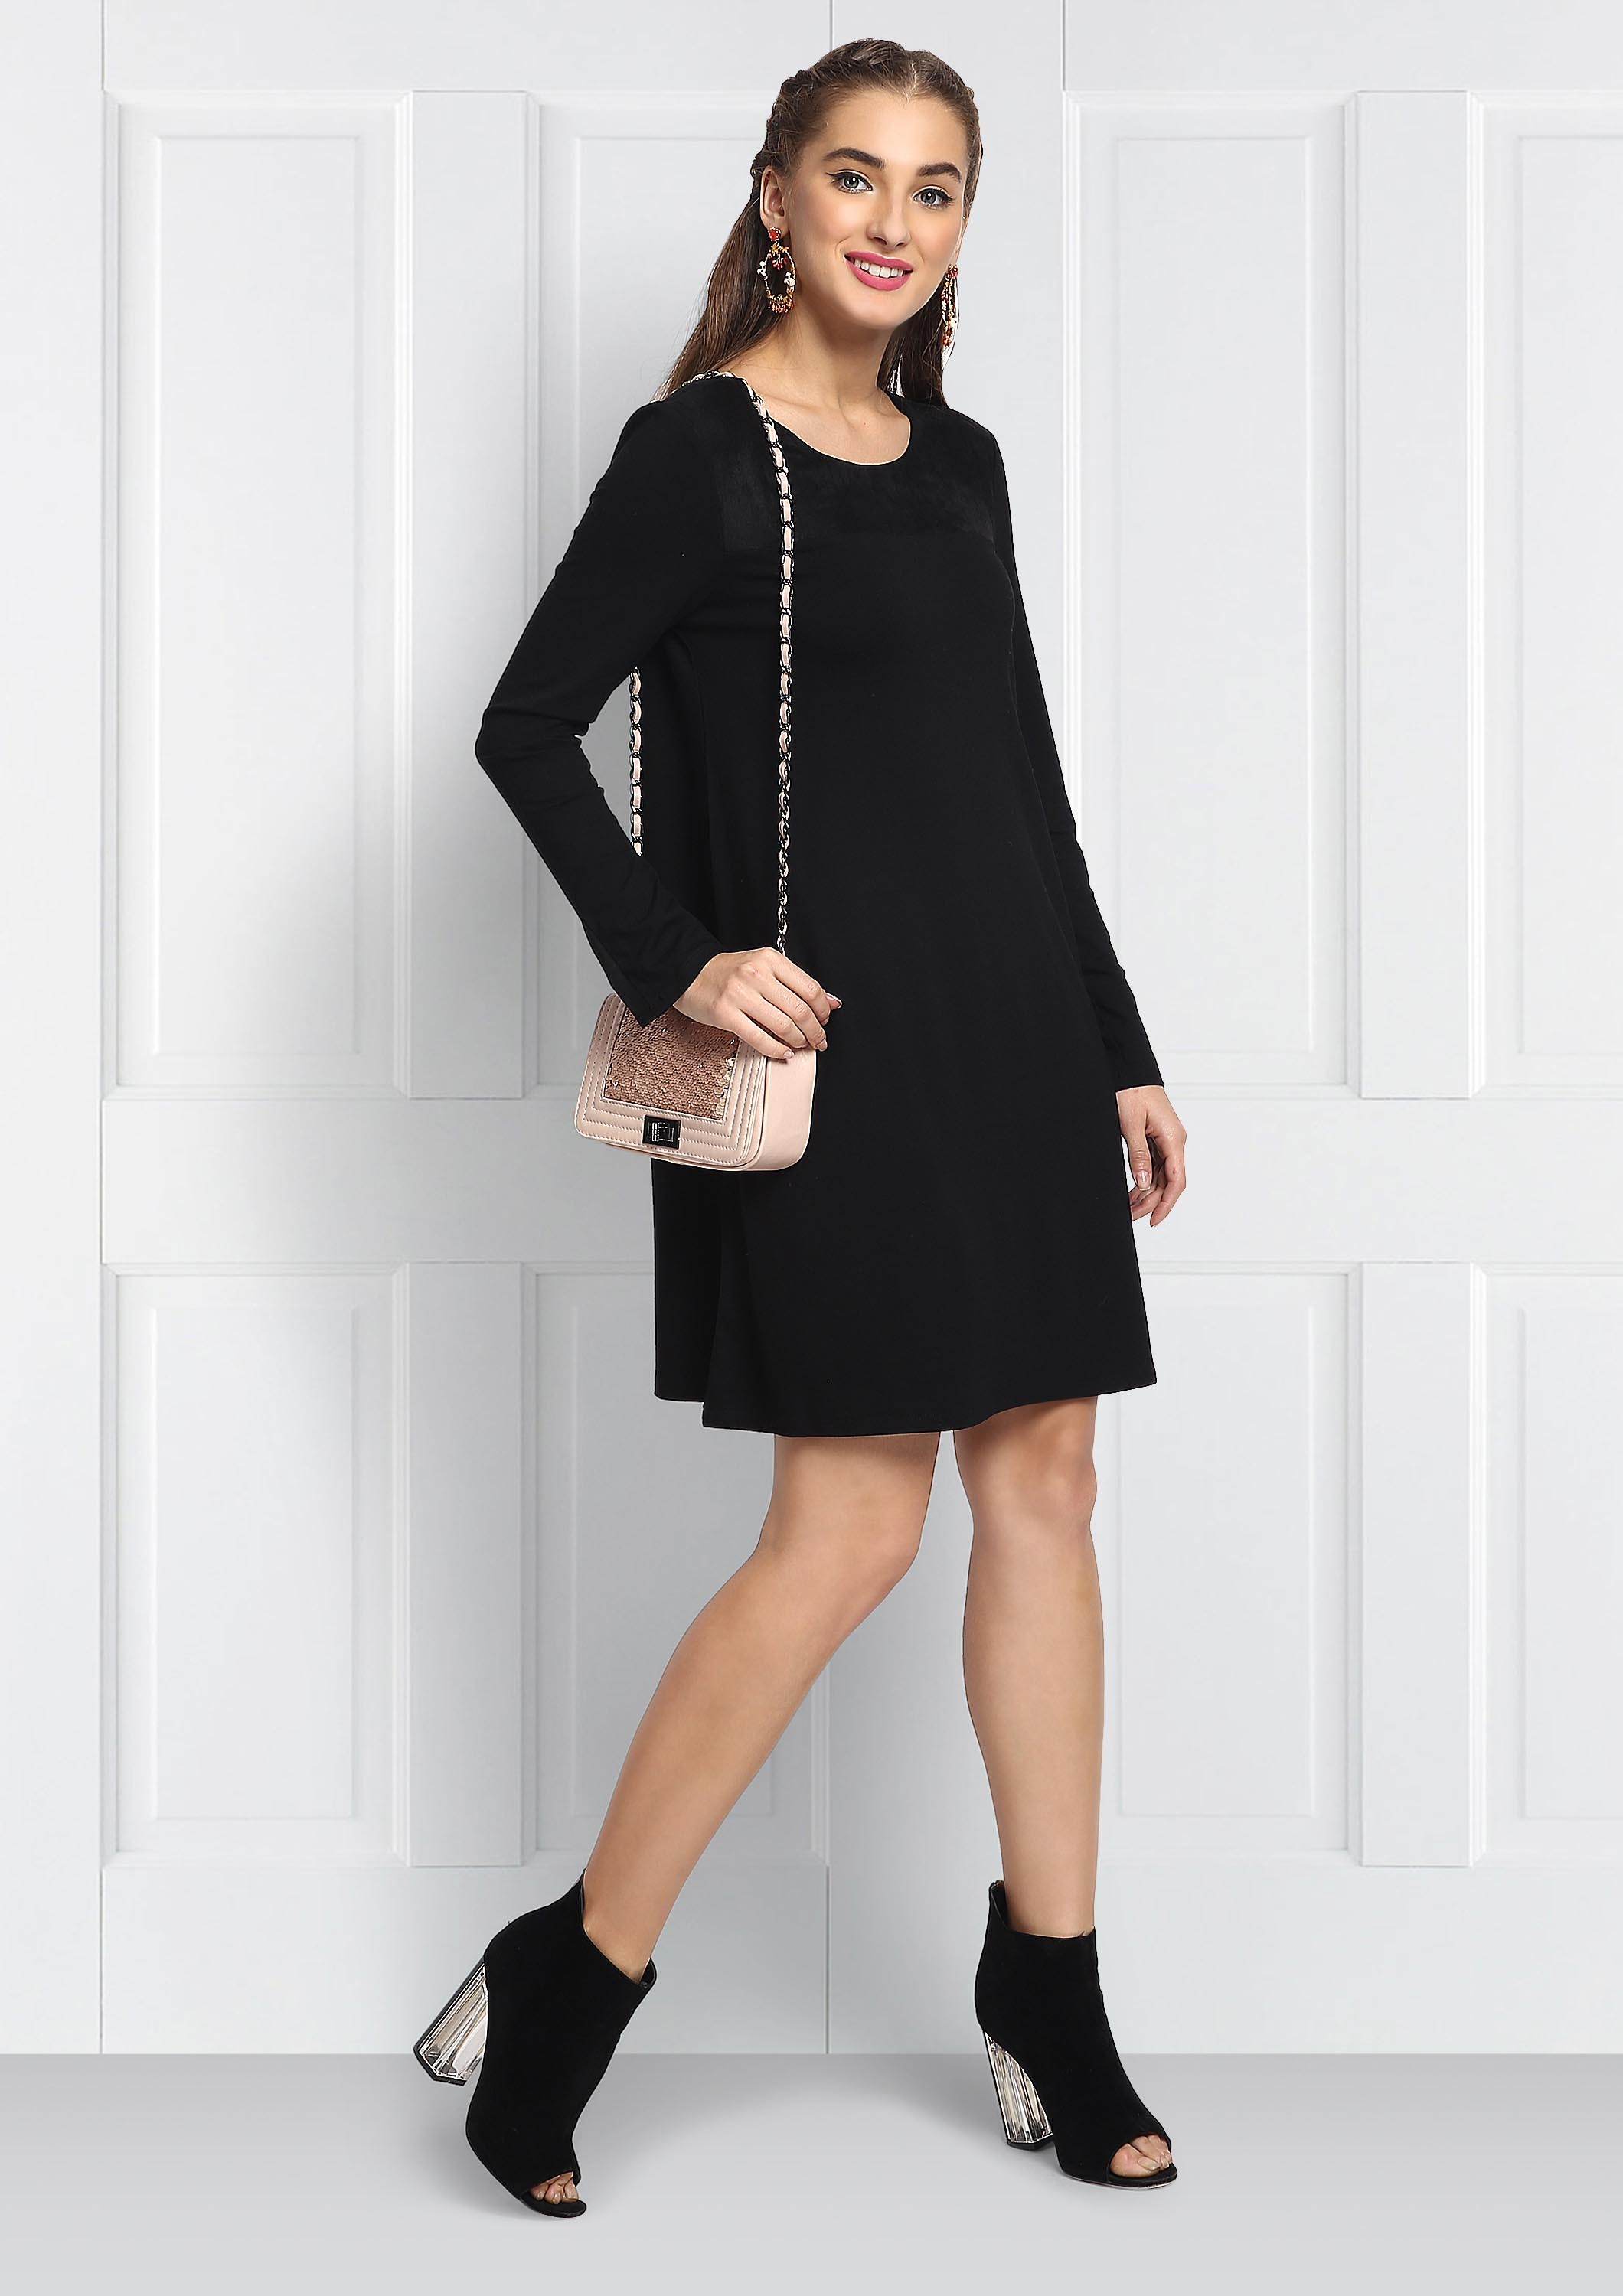 Full sleeve Black Dress